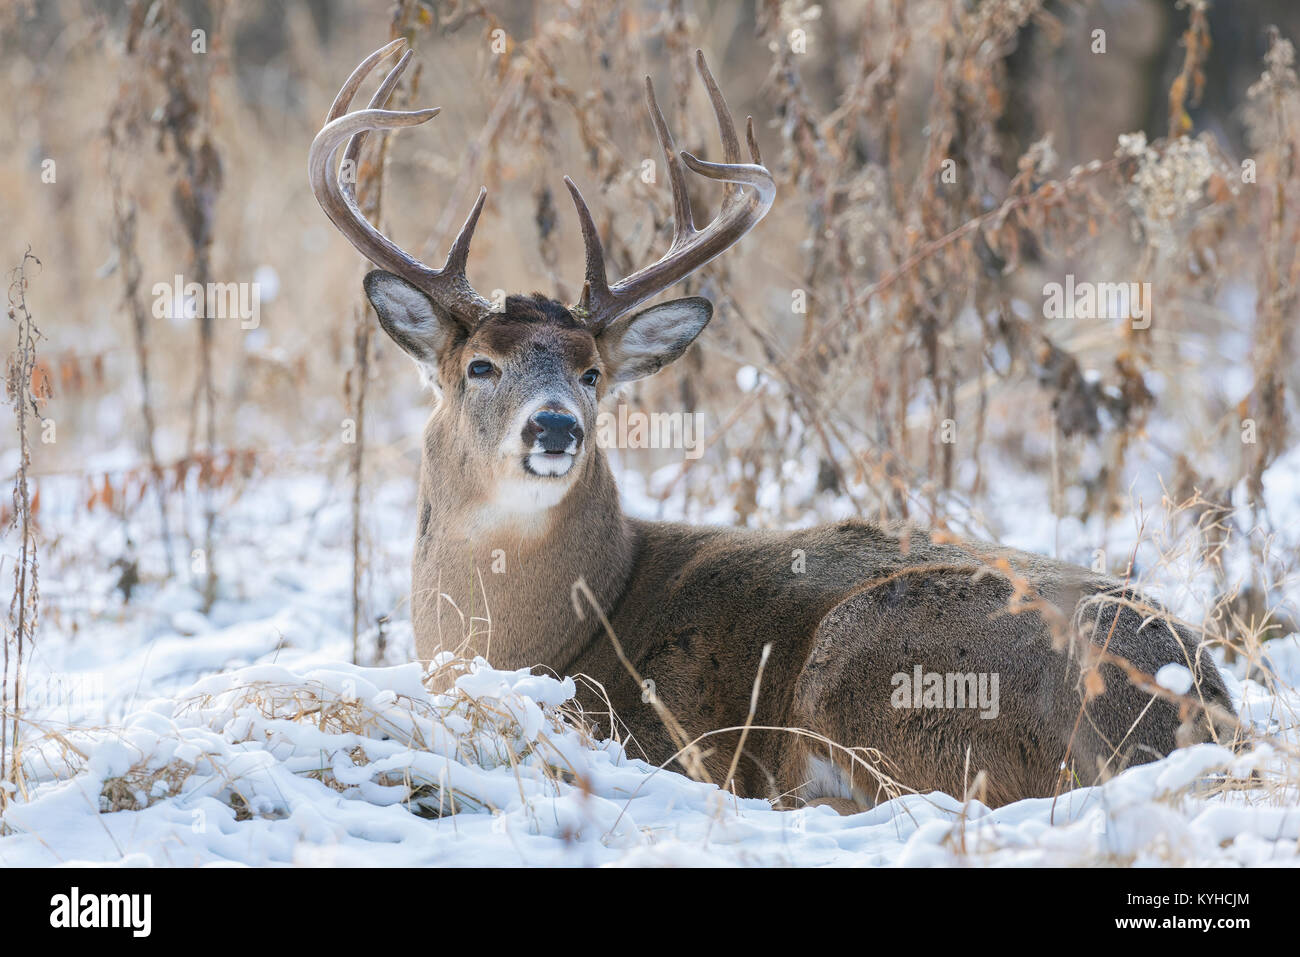 White-tailed deer( Odocoileus virginianus), Fort Snelling State Park, MN, USA, Early December, by Dominique Braud/Dembinsky - Stock Image